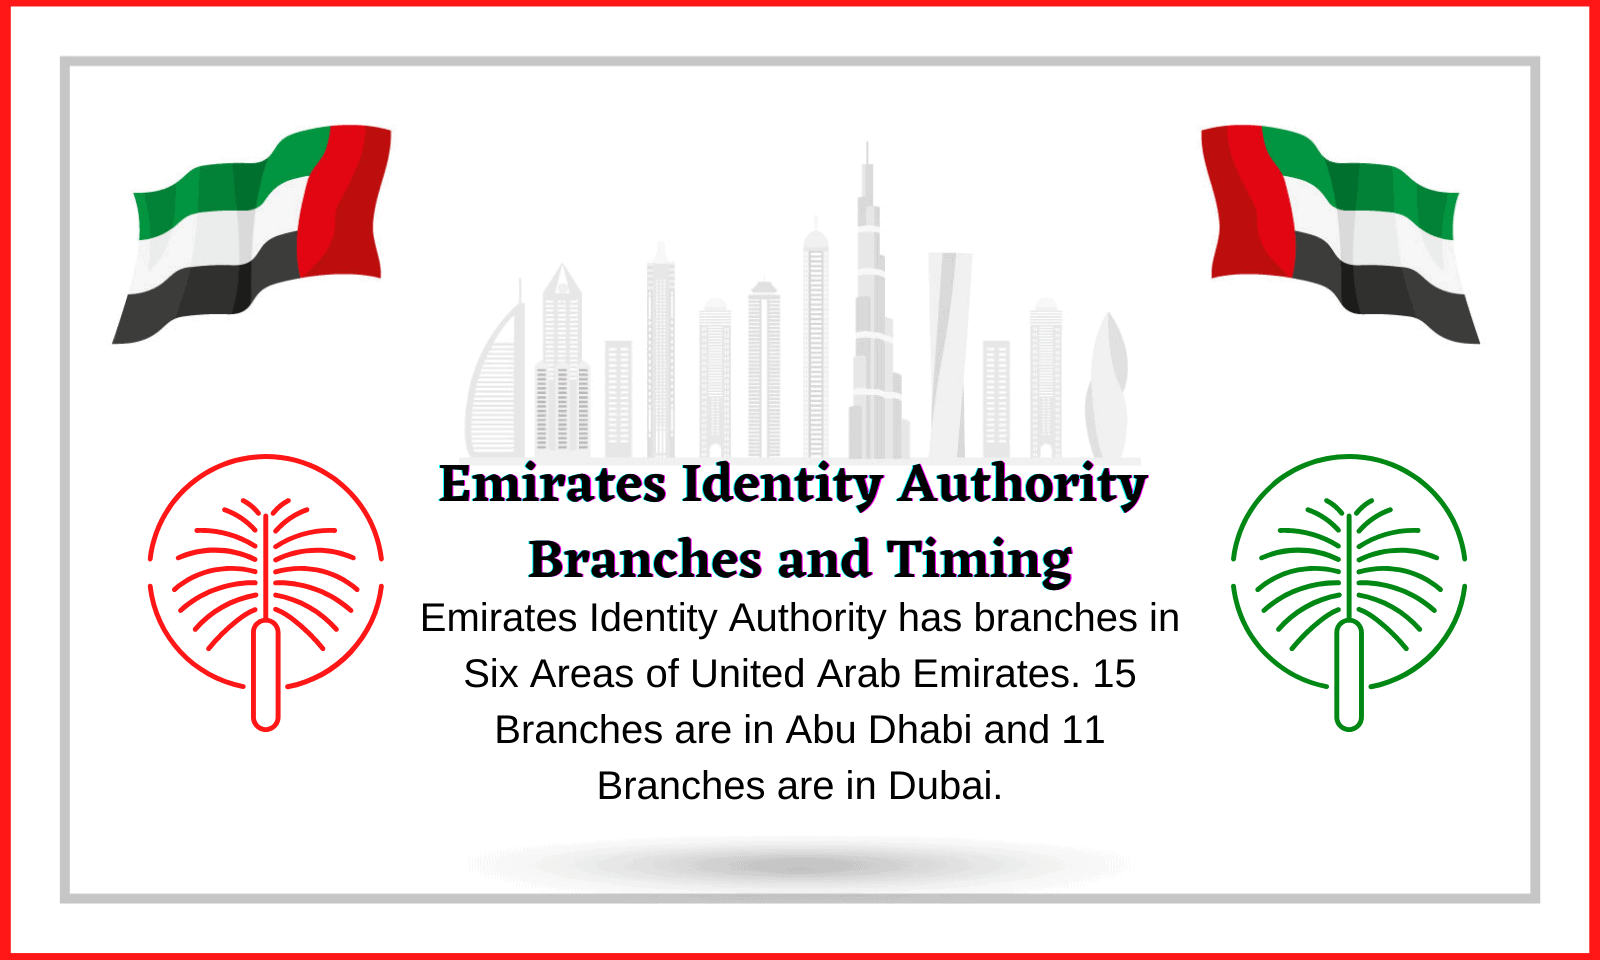 Emirates Identity Authority Branches and Timing